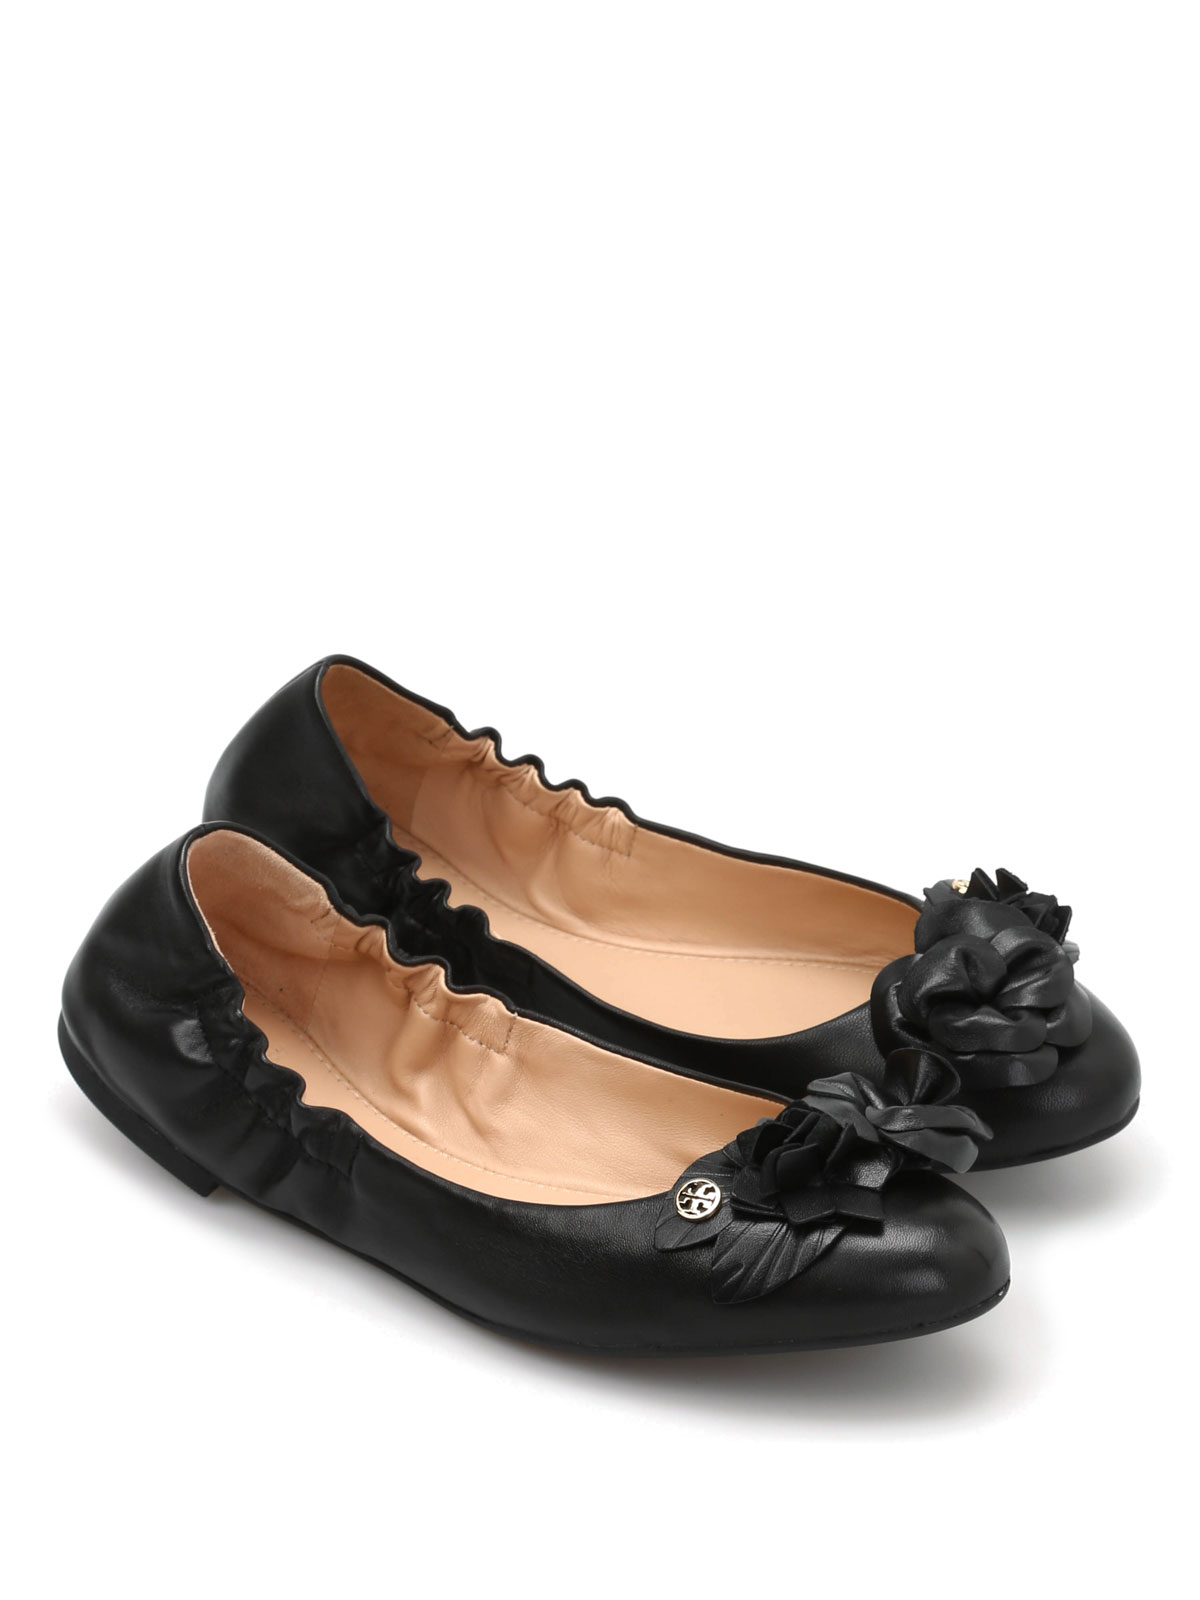 Tory Burch Black Flat Shoes